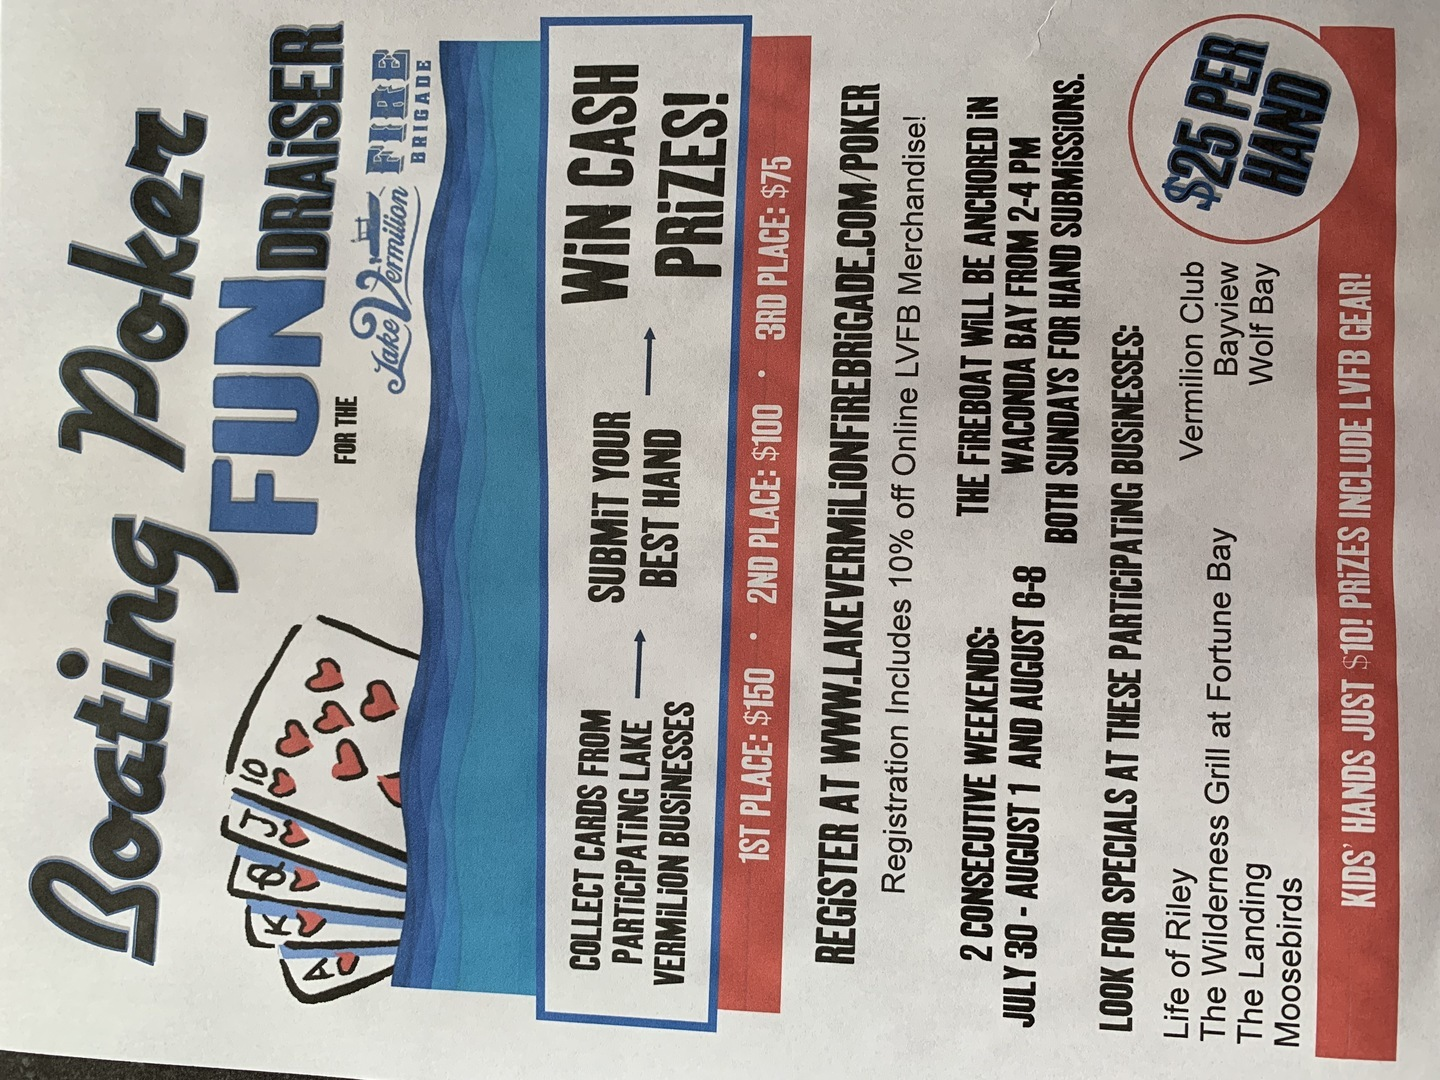 Lake Vermilion Fire Brigade's 2nd Annual Poker Fundraiser on Lake Vermilion-1st two weekends in August. Register at www.lakevermilionfirebrigade.com/poker.